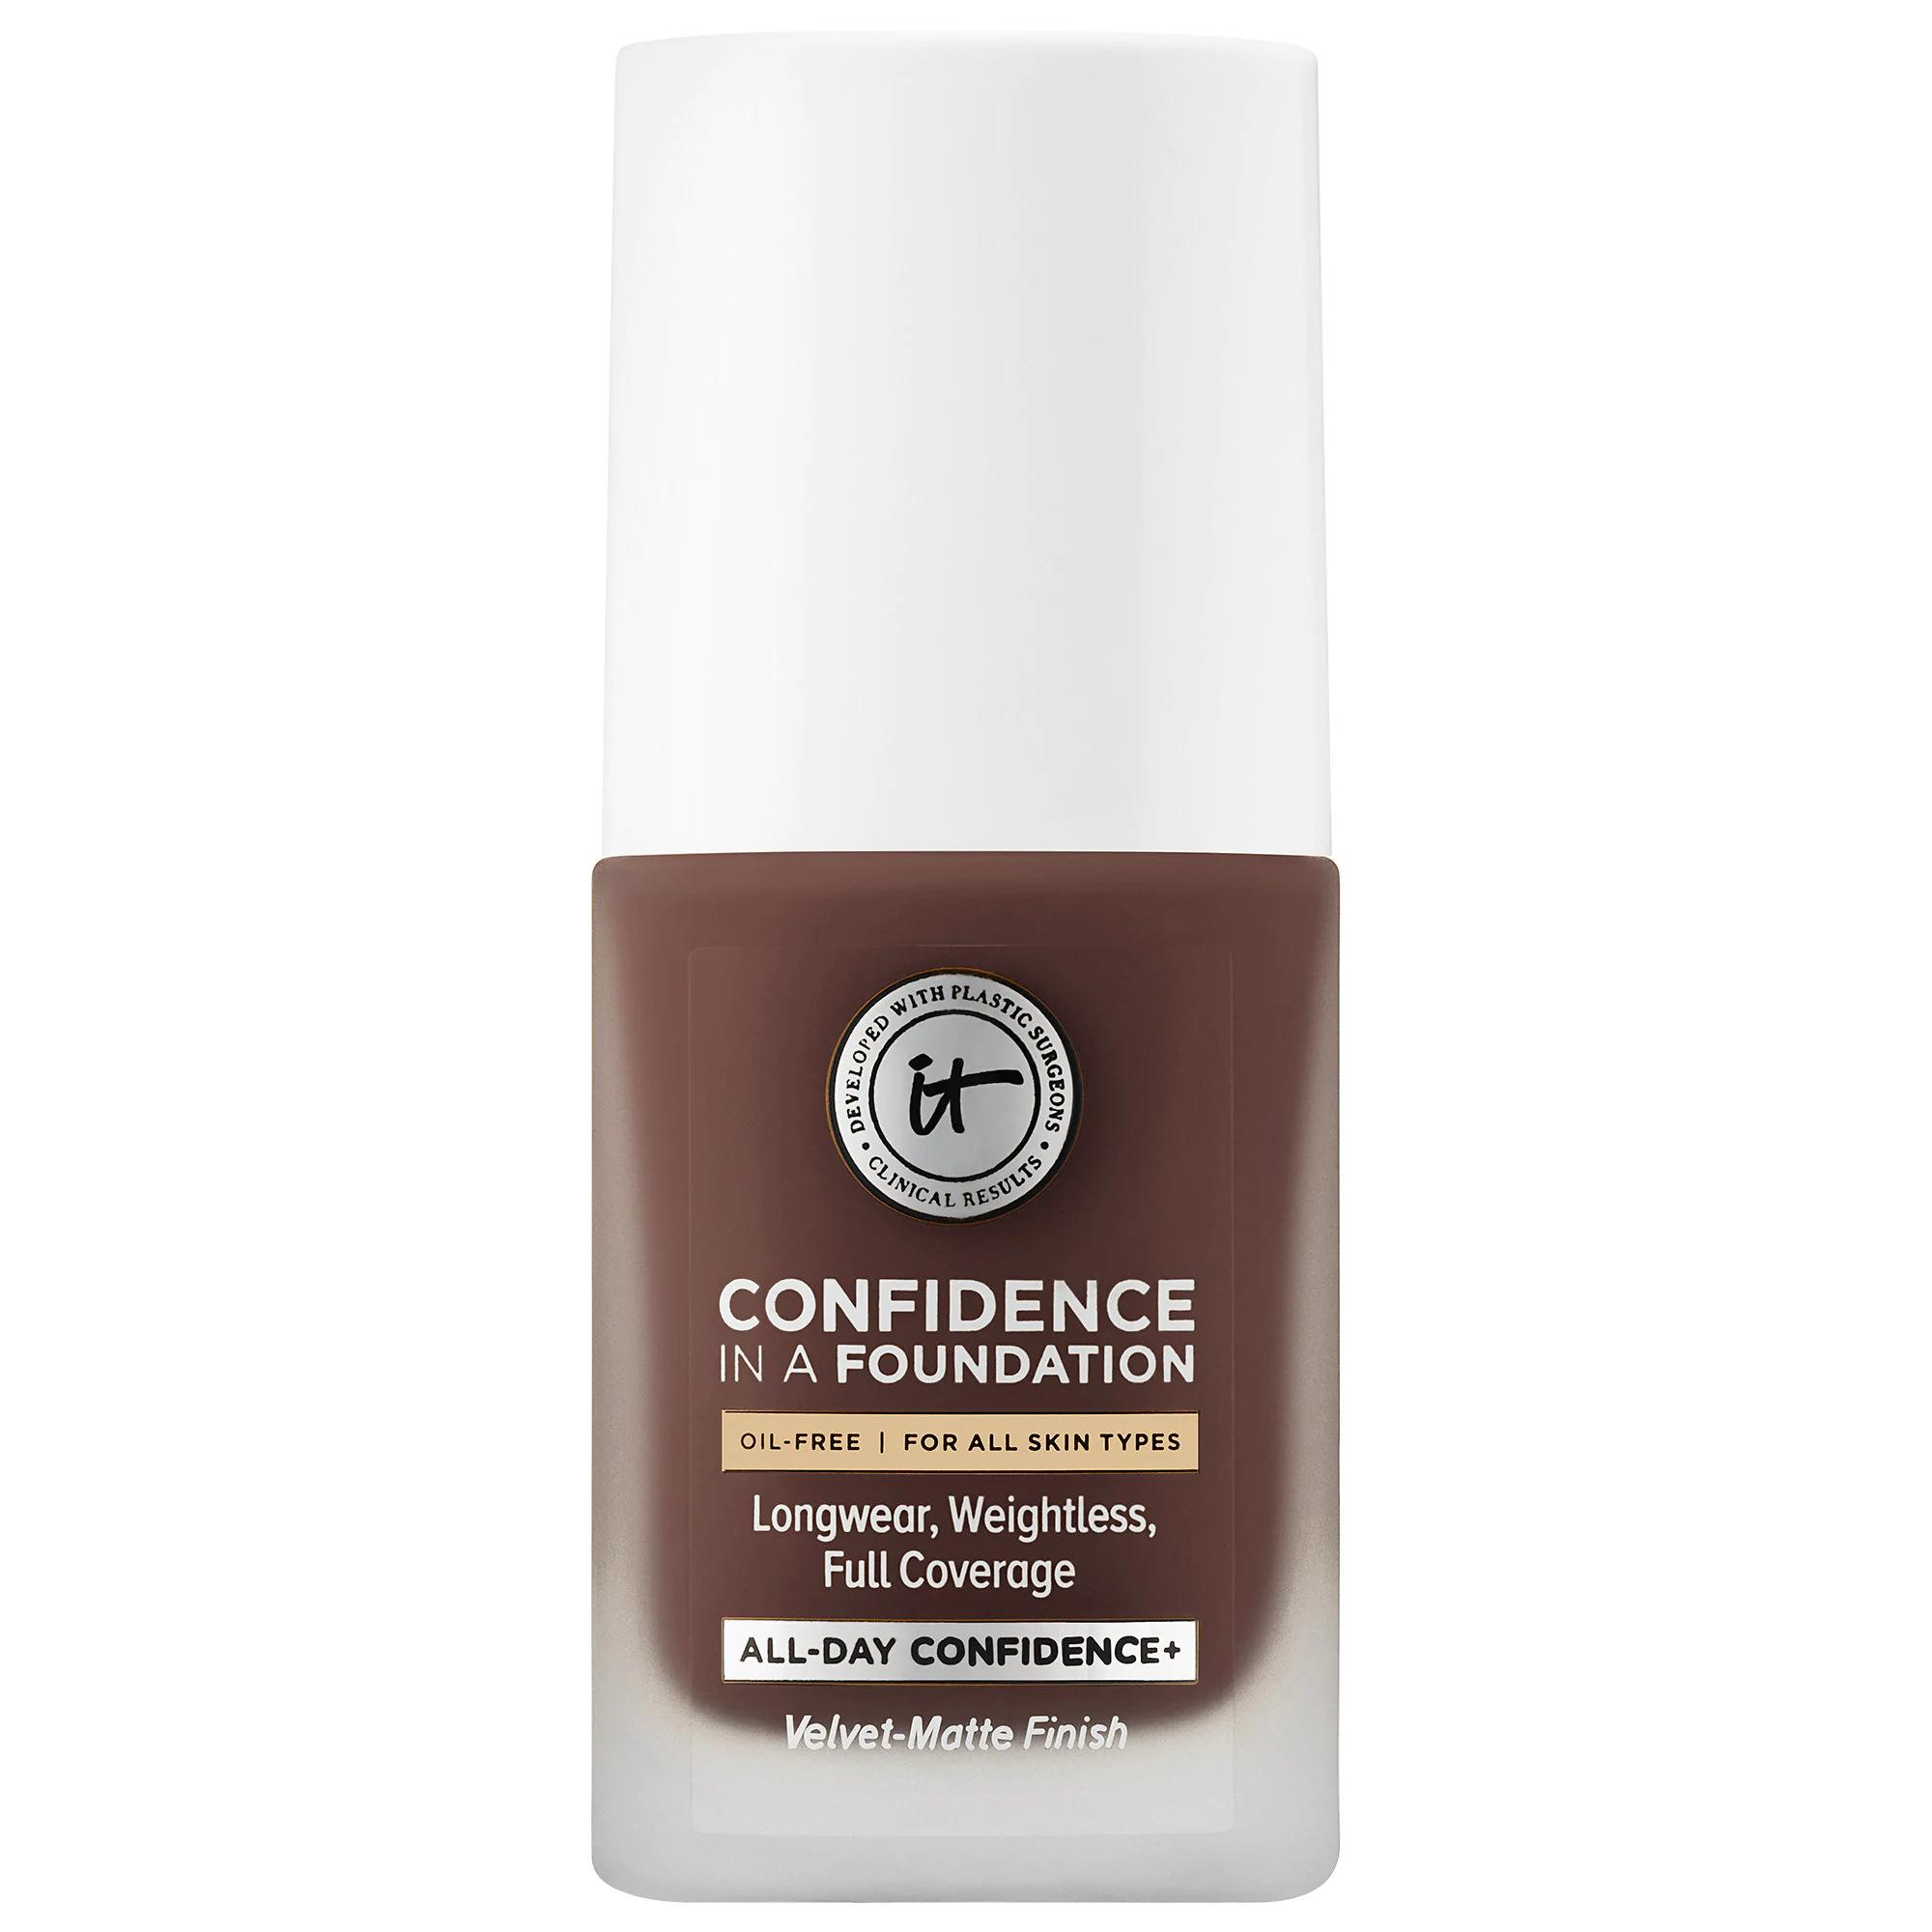 IT Cosmetics Confidence in a Foundation Deep Espresso 545